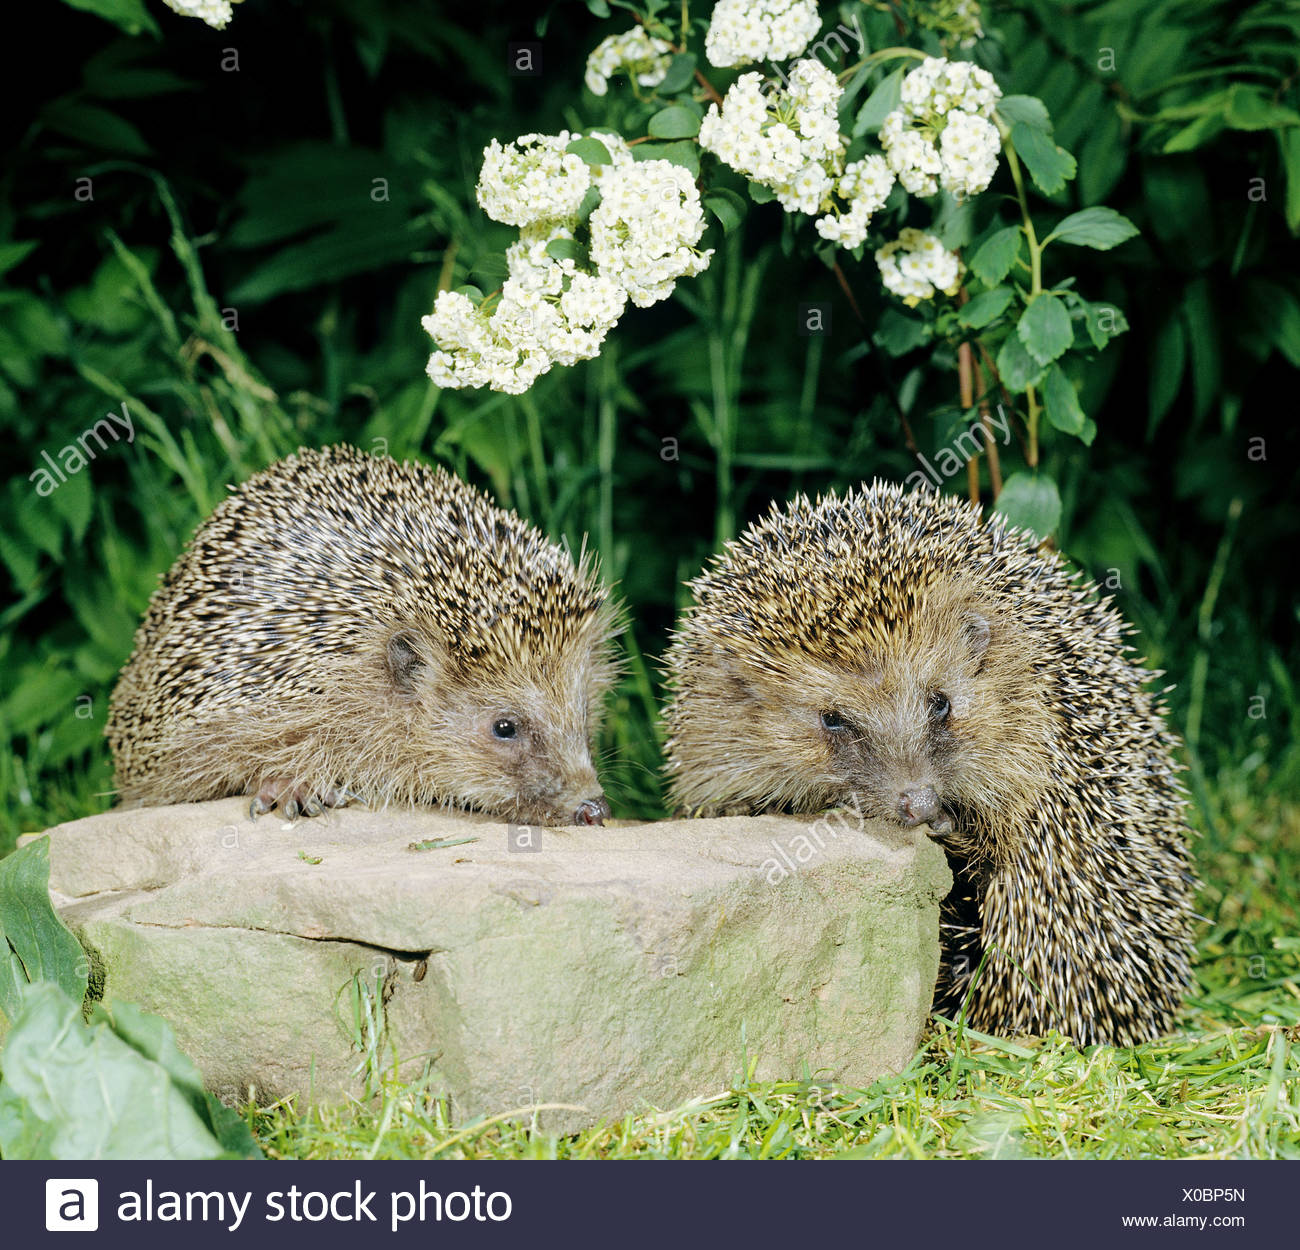 European Hedgehog, Western Hedgehog (Erinaceus europaeus). Mother and young on a rock - Stock Image